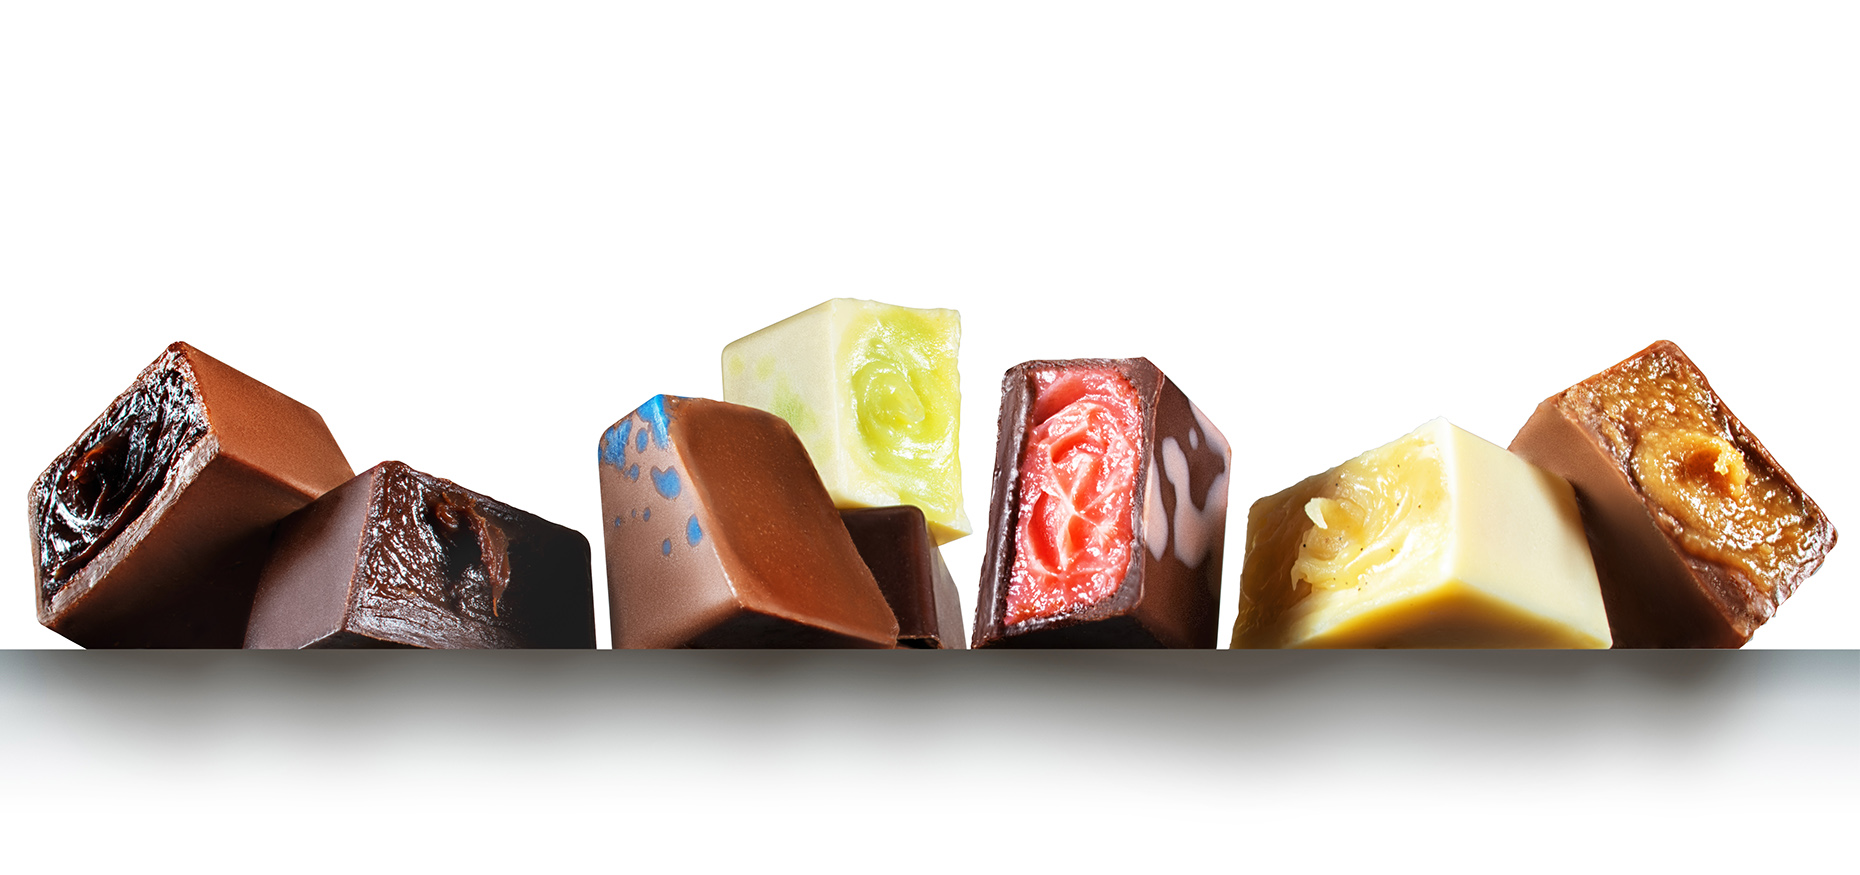 New-york-food-studio-artisen-chocolate-truffles.